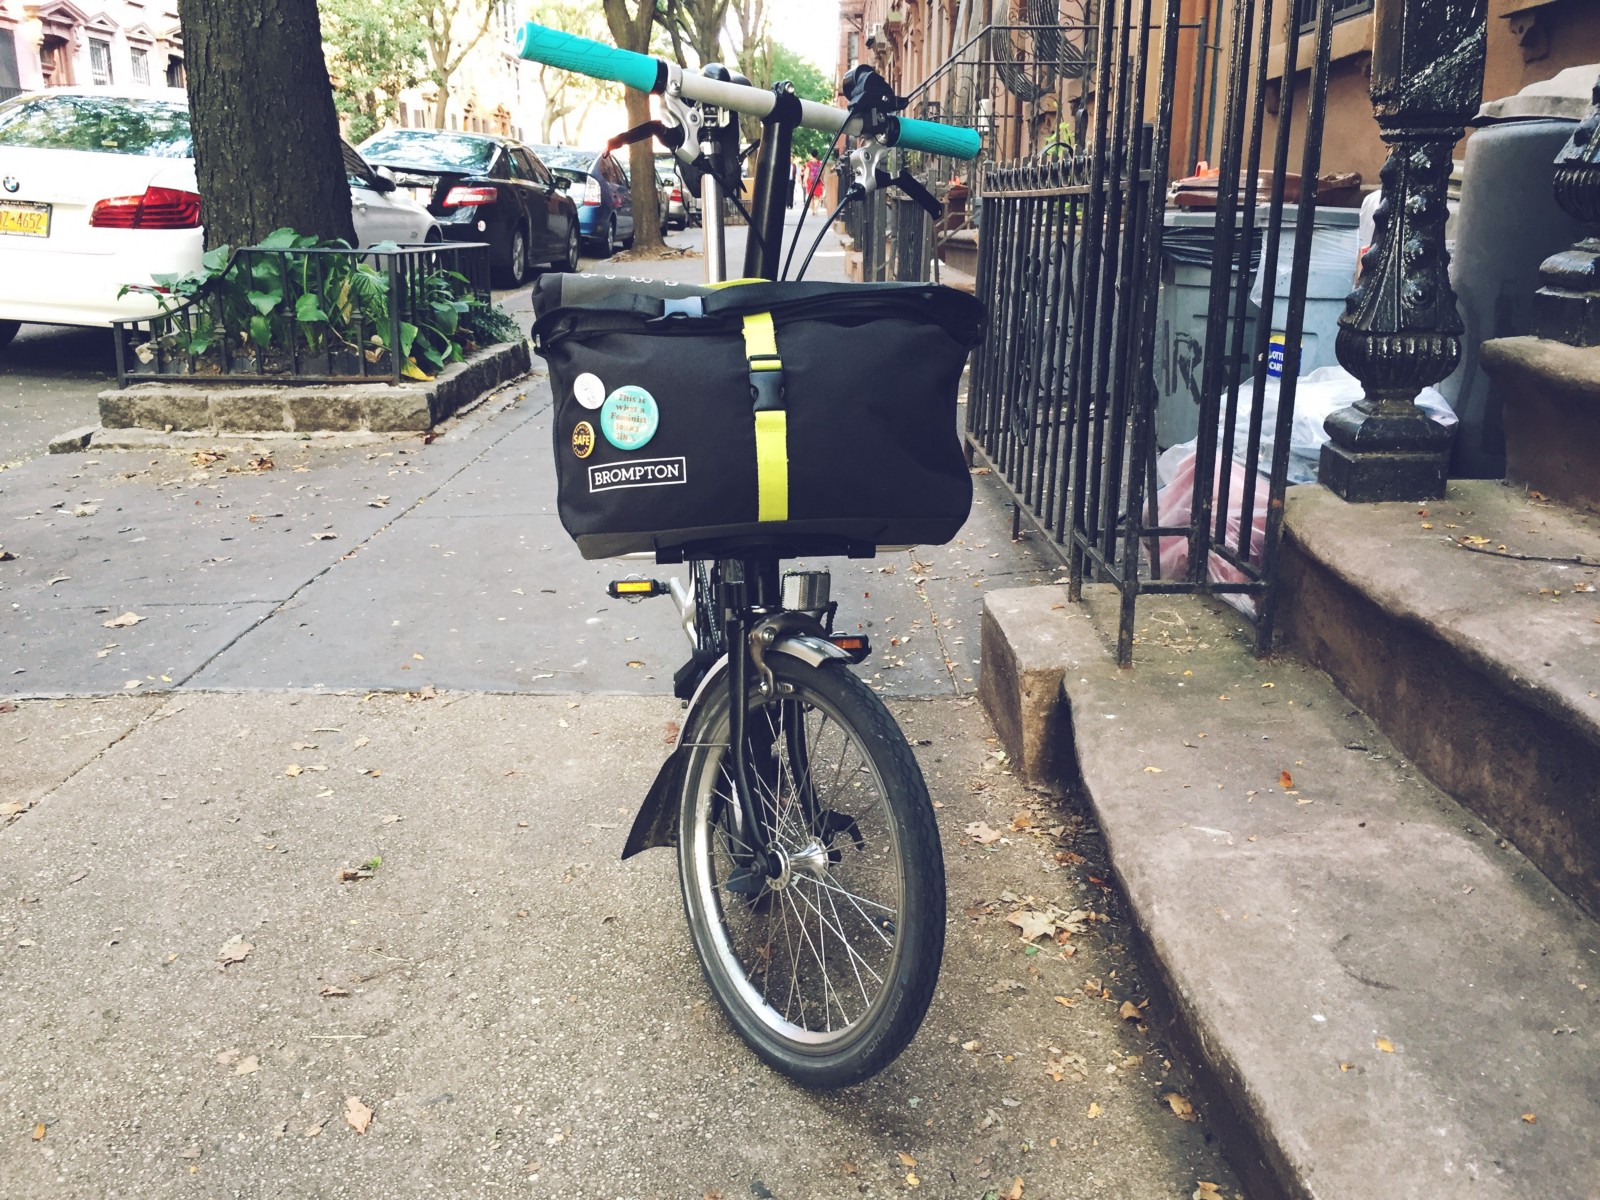 A Tiny Review Of Medium Sized Bag For Small Folding Bike The Brompton Roll Top Shoulder